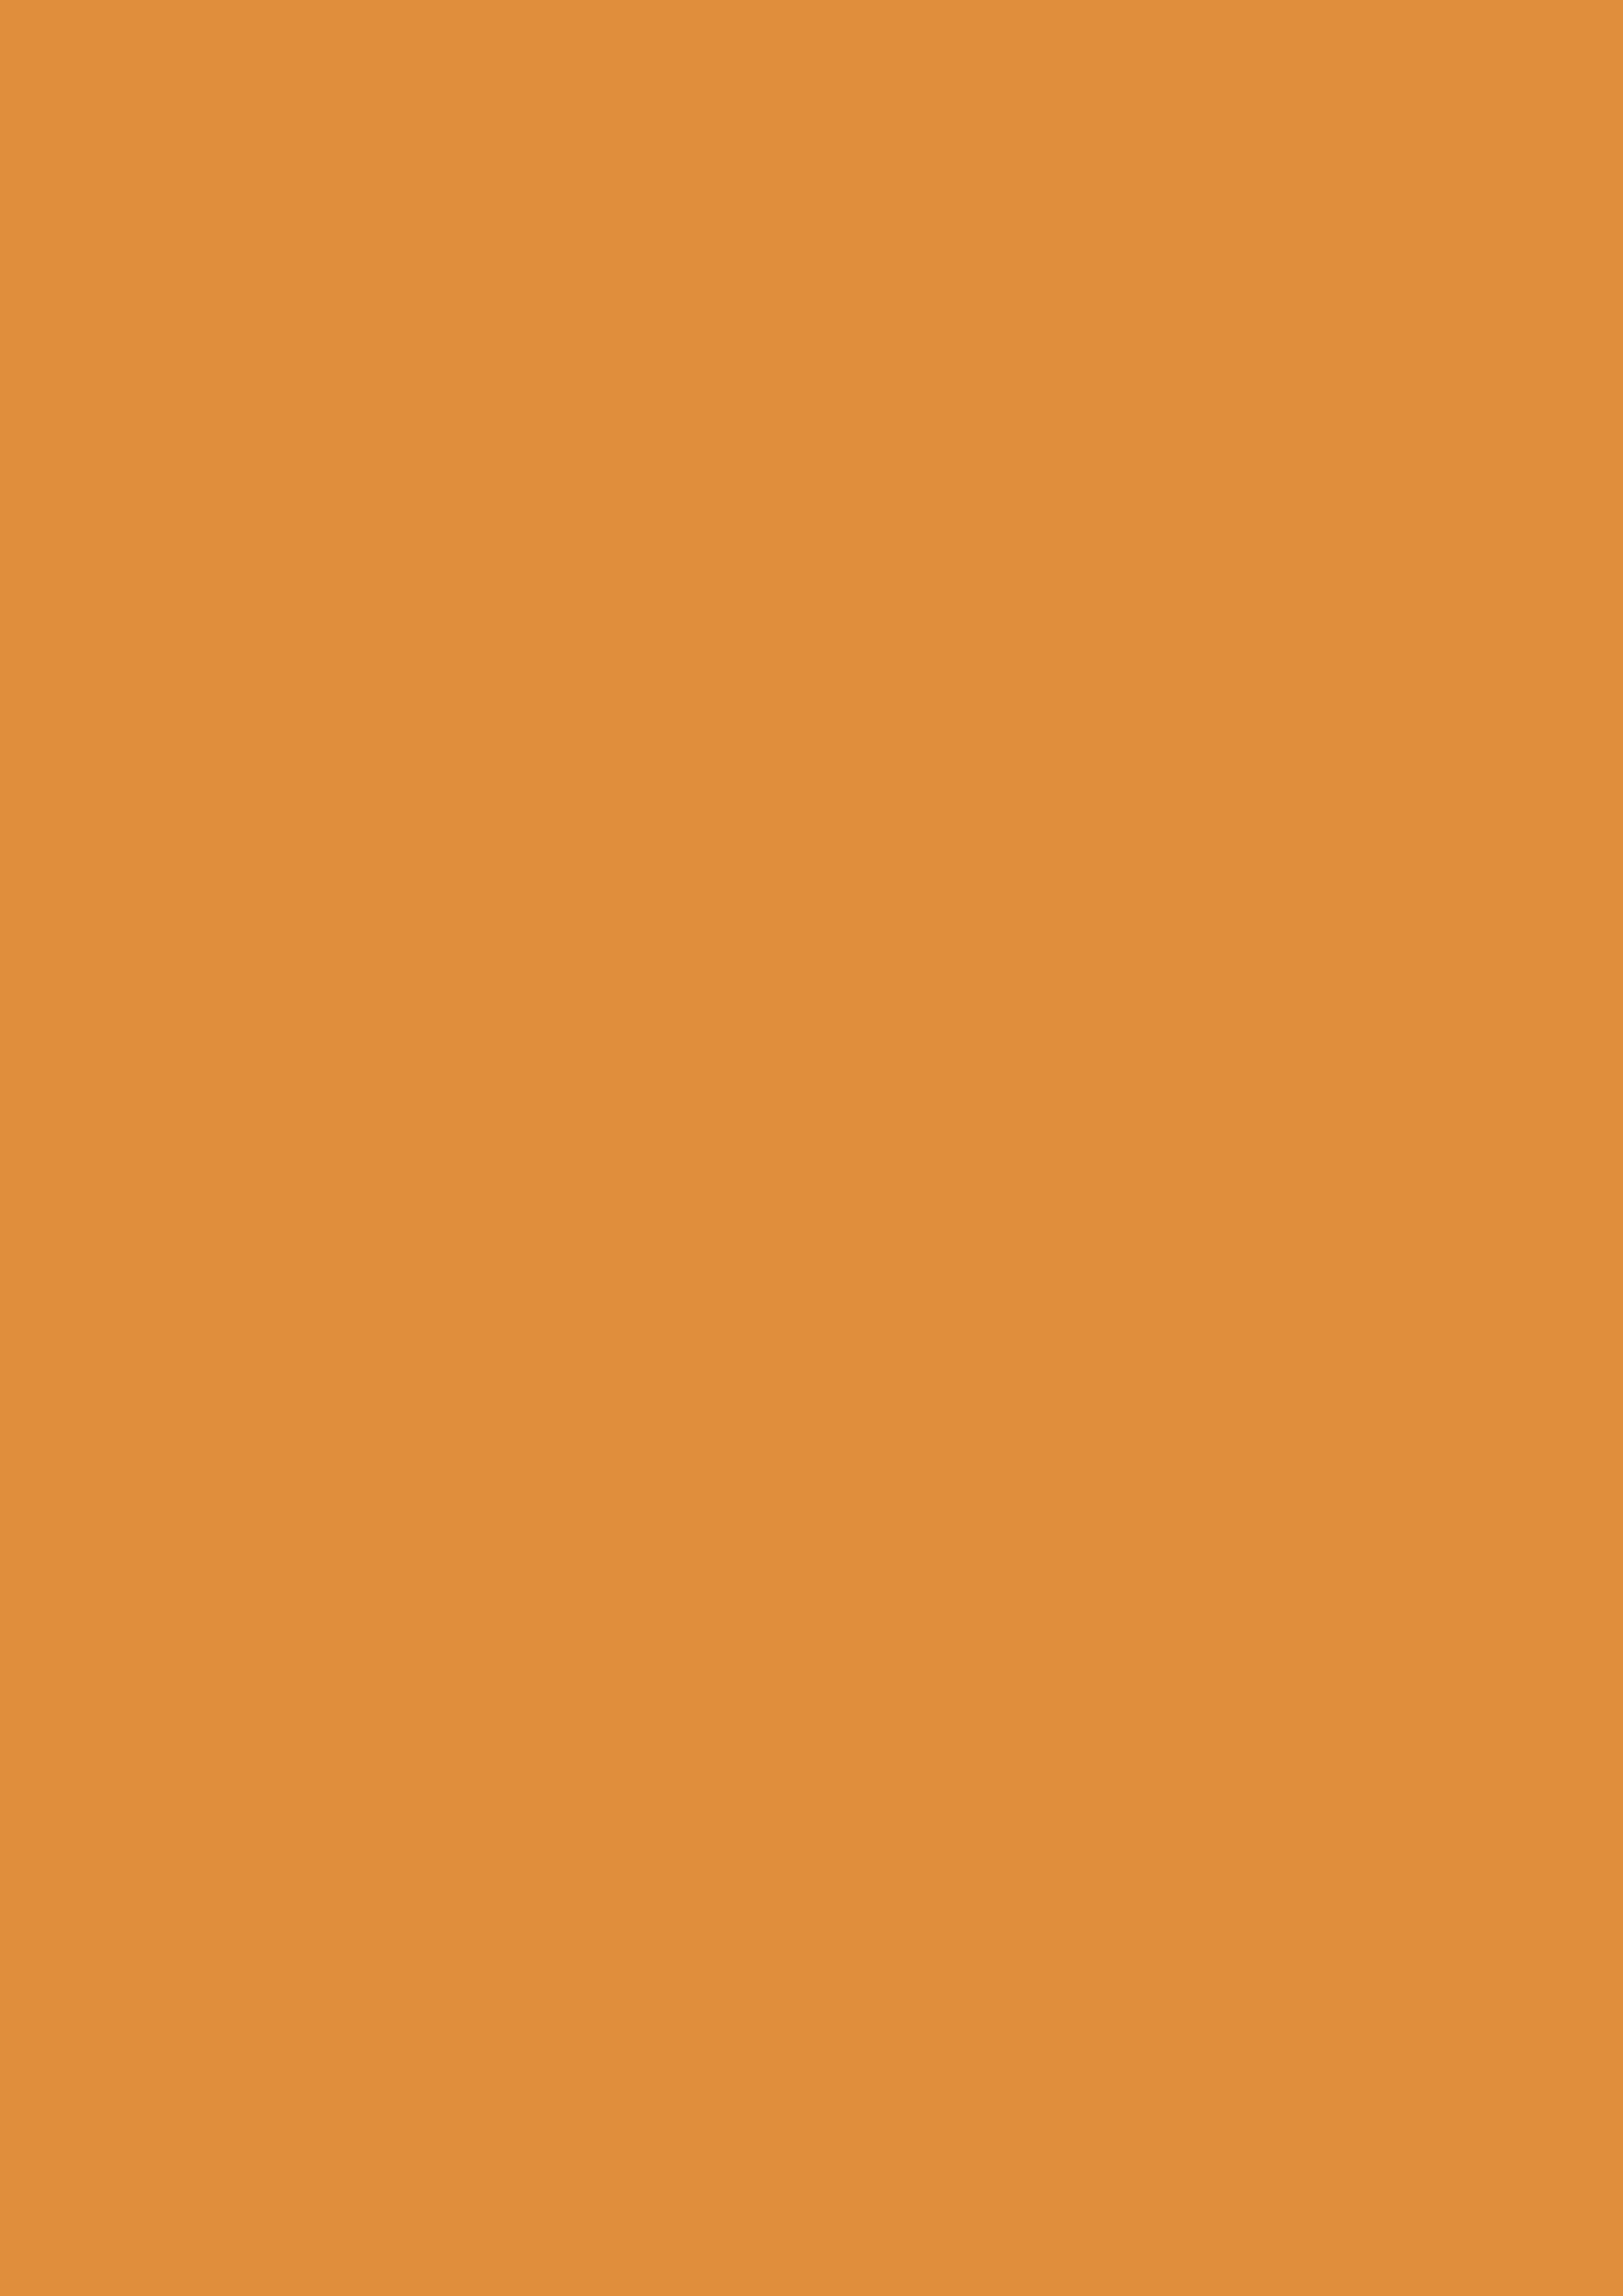 2480x3508 Tigers Eye Solid Color Background